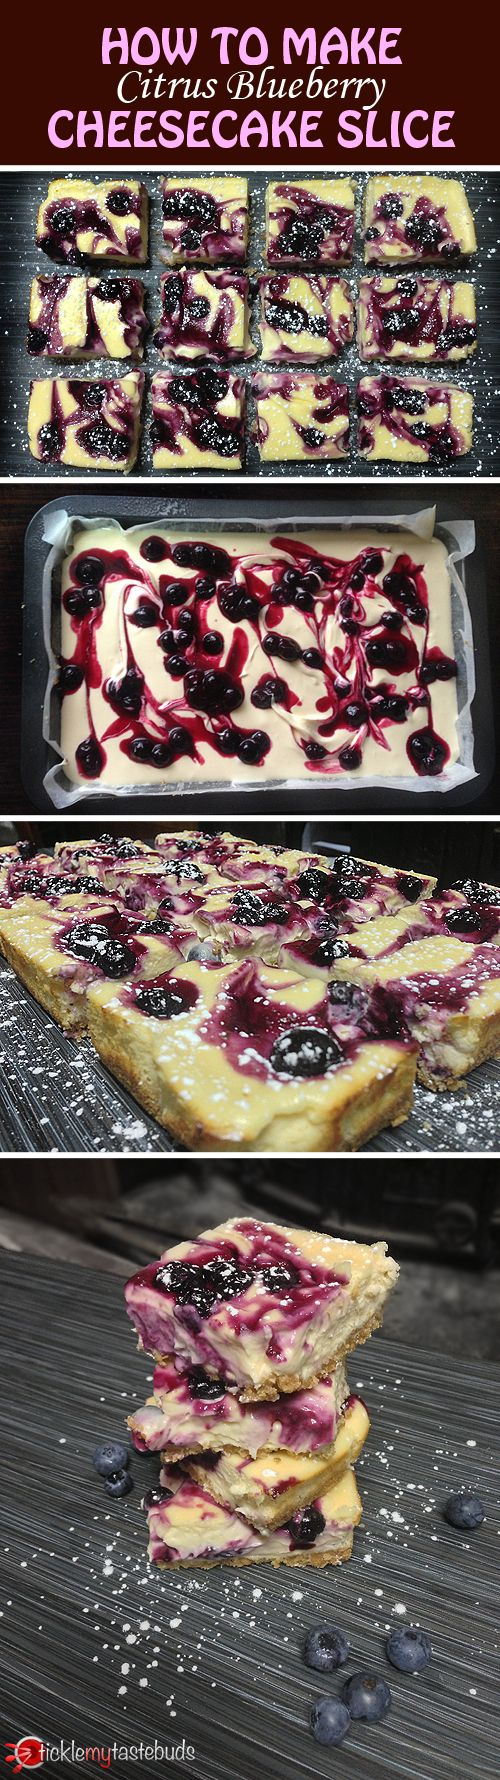 Follow our step-by-step beginner's guide to creating our delicious citrus blueberry cheesecake slice - tangy, yet sweet, this will leave your mouth watering for more!